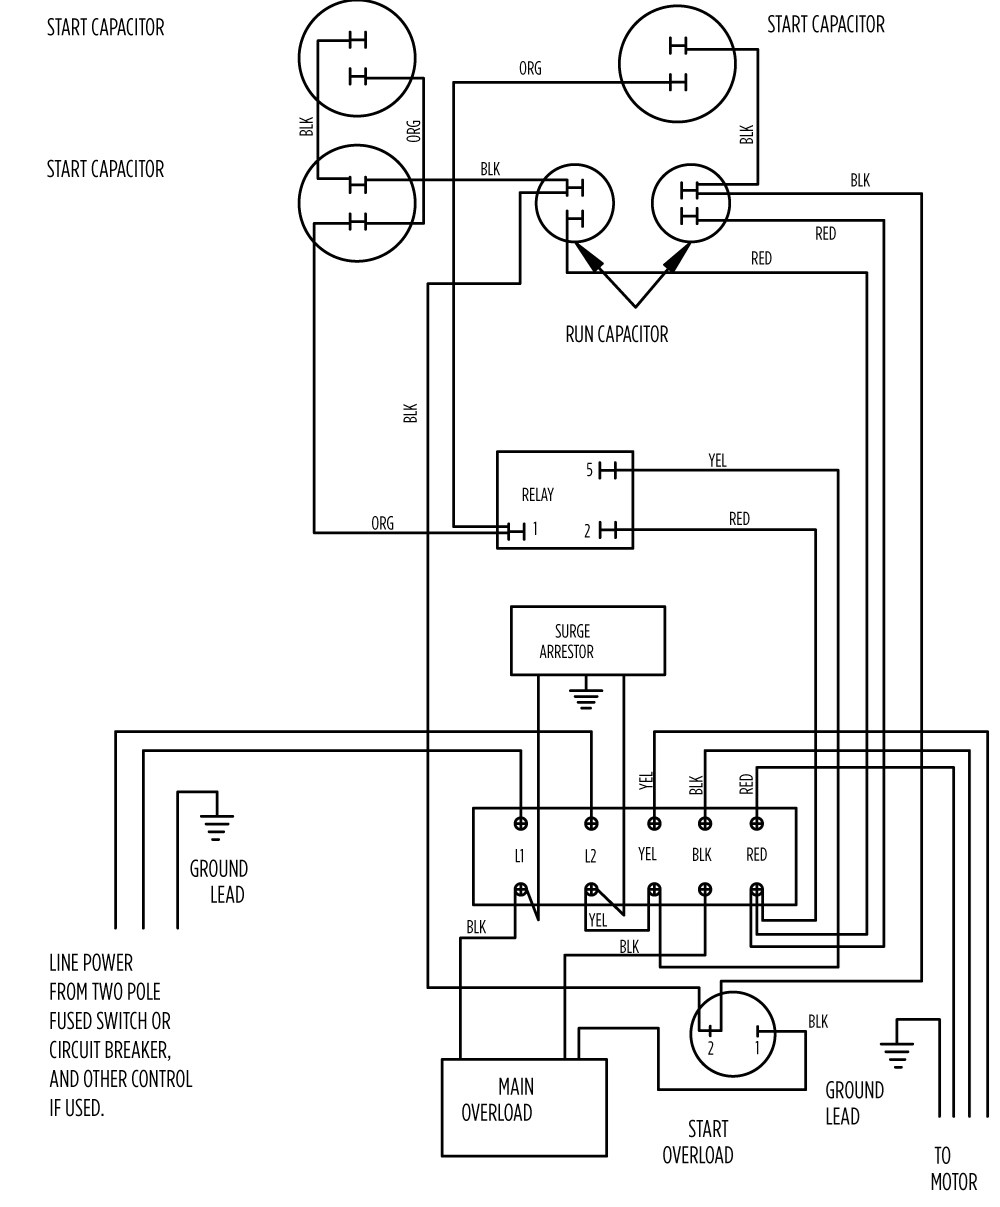 10 hp standard 282 202 9210 or 282 202 9230_aim gallery?format=jpg&quality=80 aim manual page 57 single phase motors and controls motor franklin electric submersible motor control wiring diagram at edmiracle.co